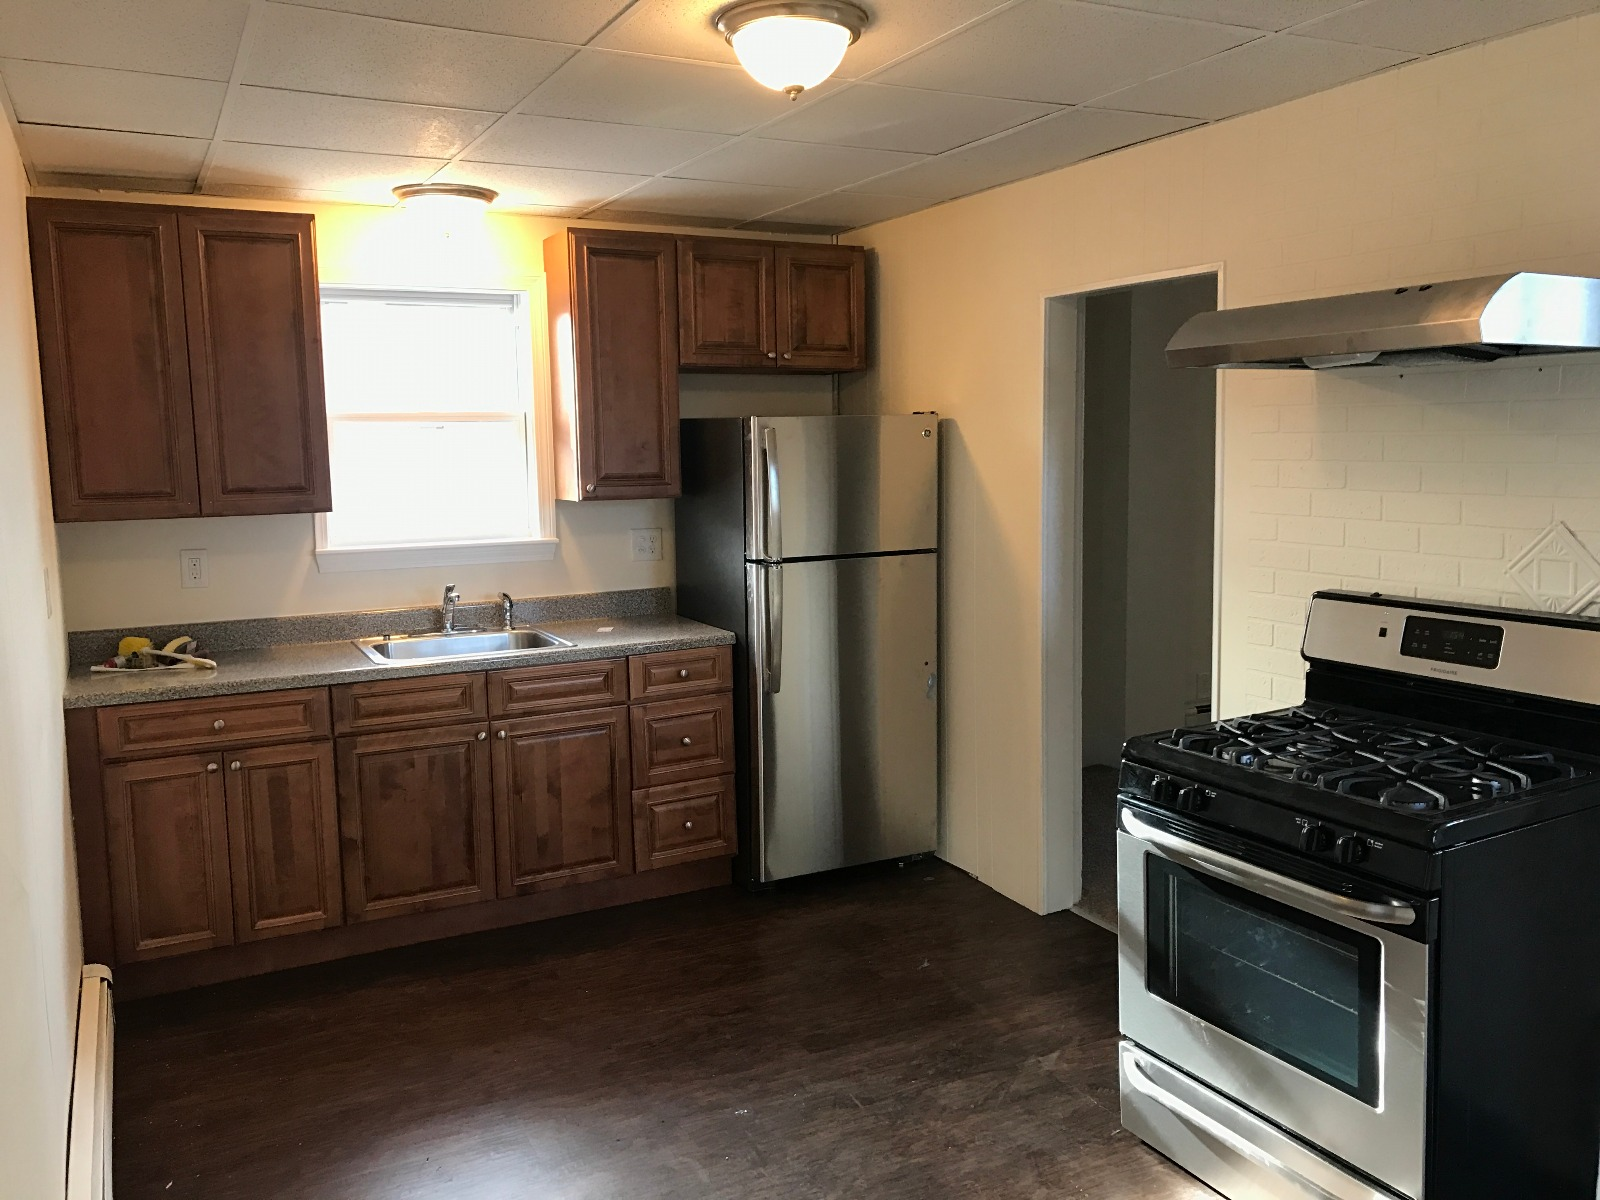 Updated Union Sq 3BR - Avail NOW - Stainless - Easy T Access!